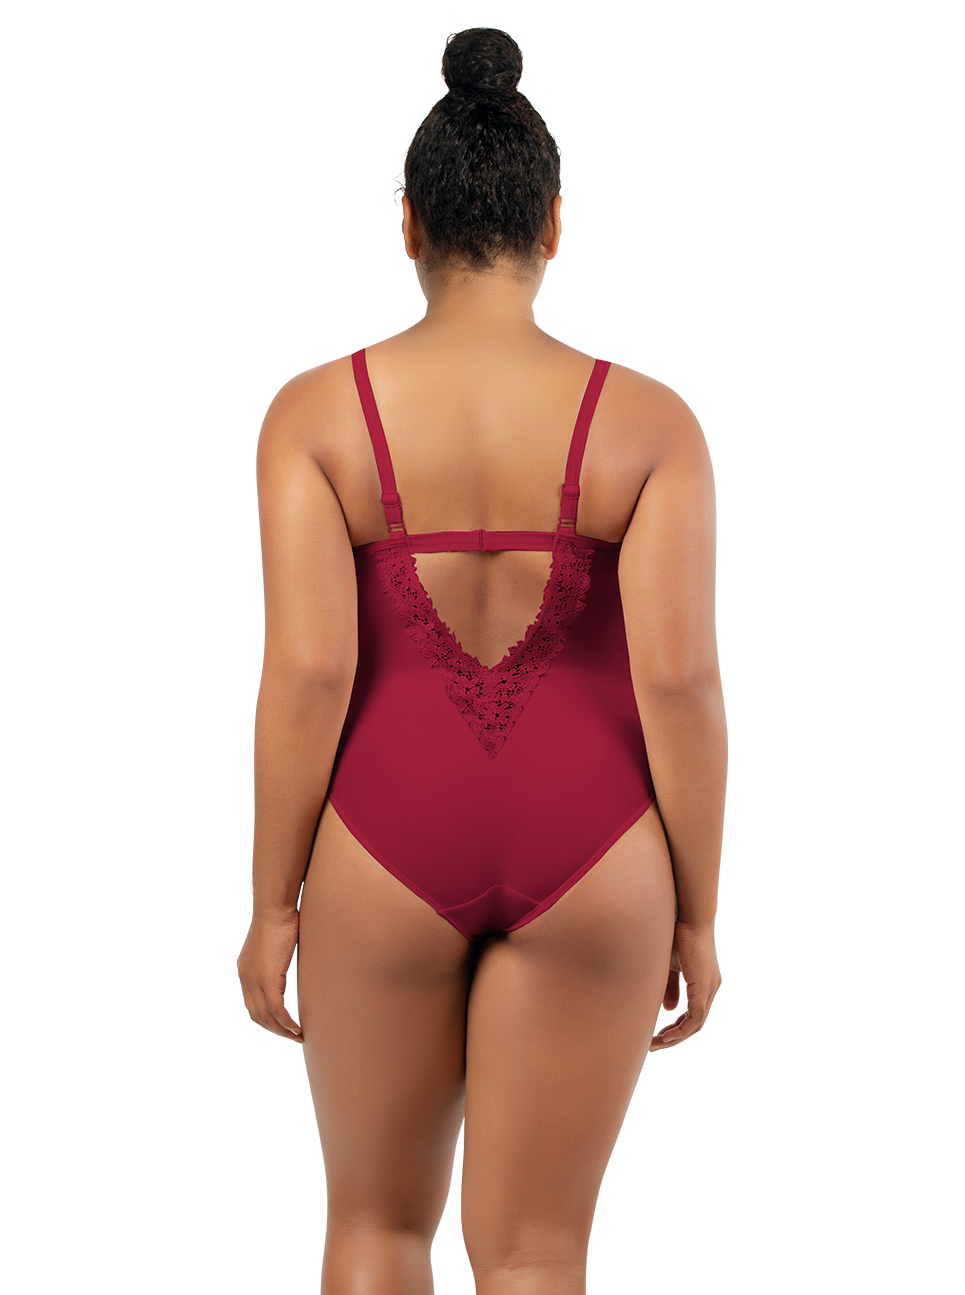 PARFAIT Brigitte OnePieceSwimsuitS8206 RumabaRed Back2 - Brigitte One Piece Swimsuit Rumba Red S8206